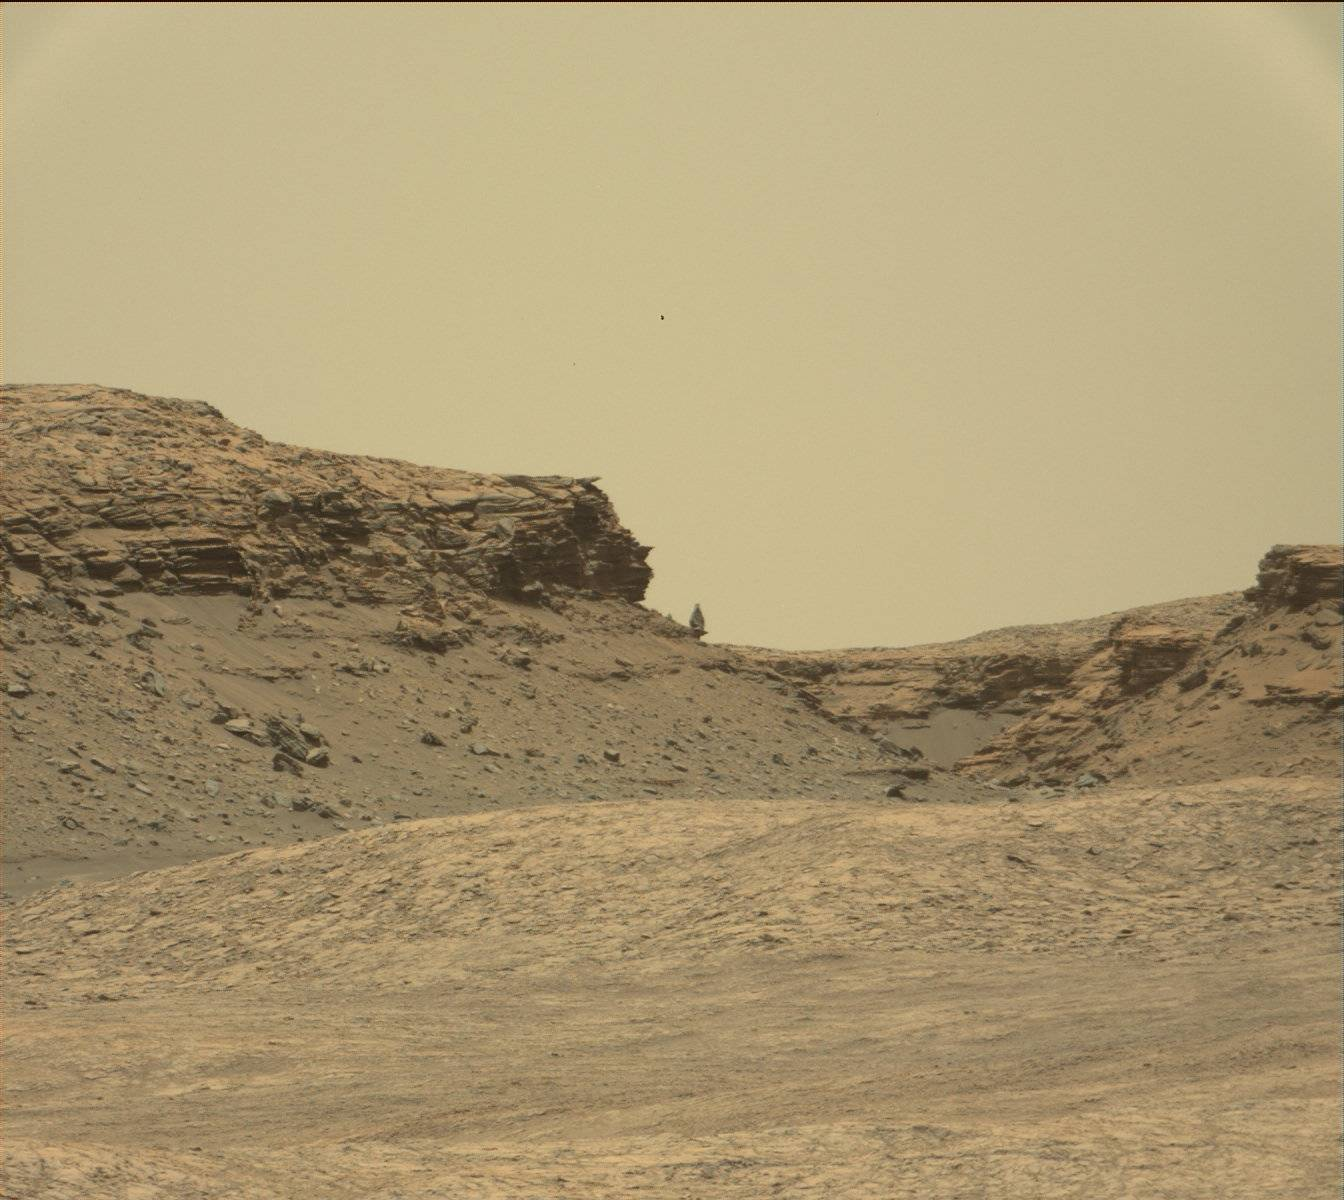 Mastcam view of Murray Buttes showing a precariously balanced boulder.